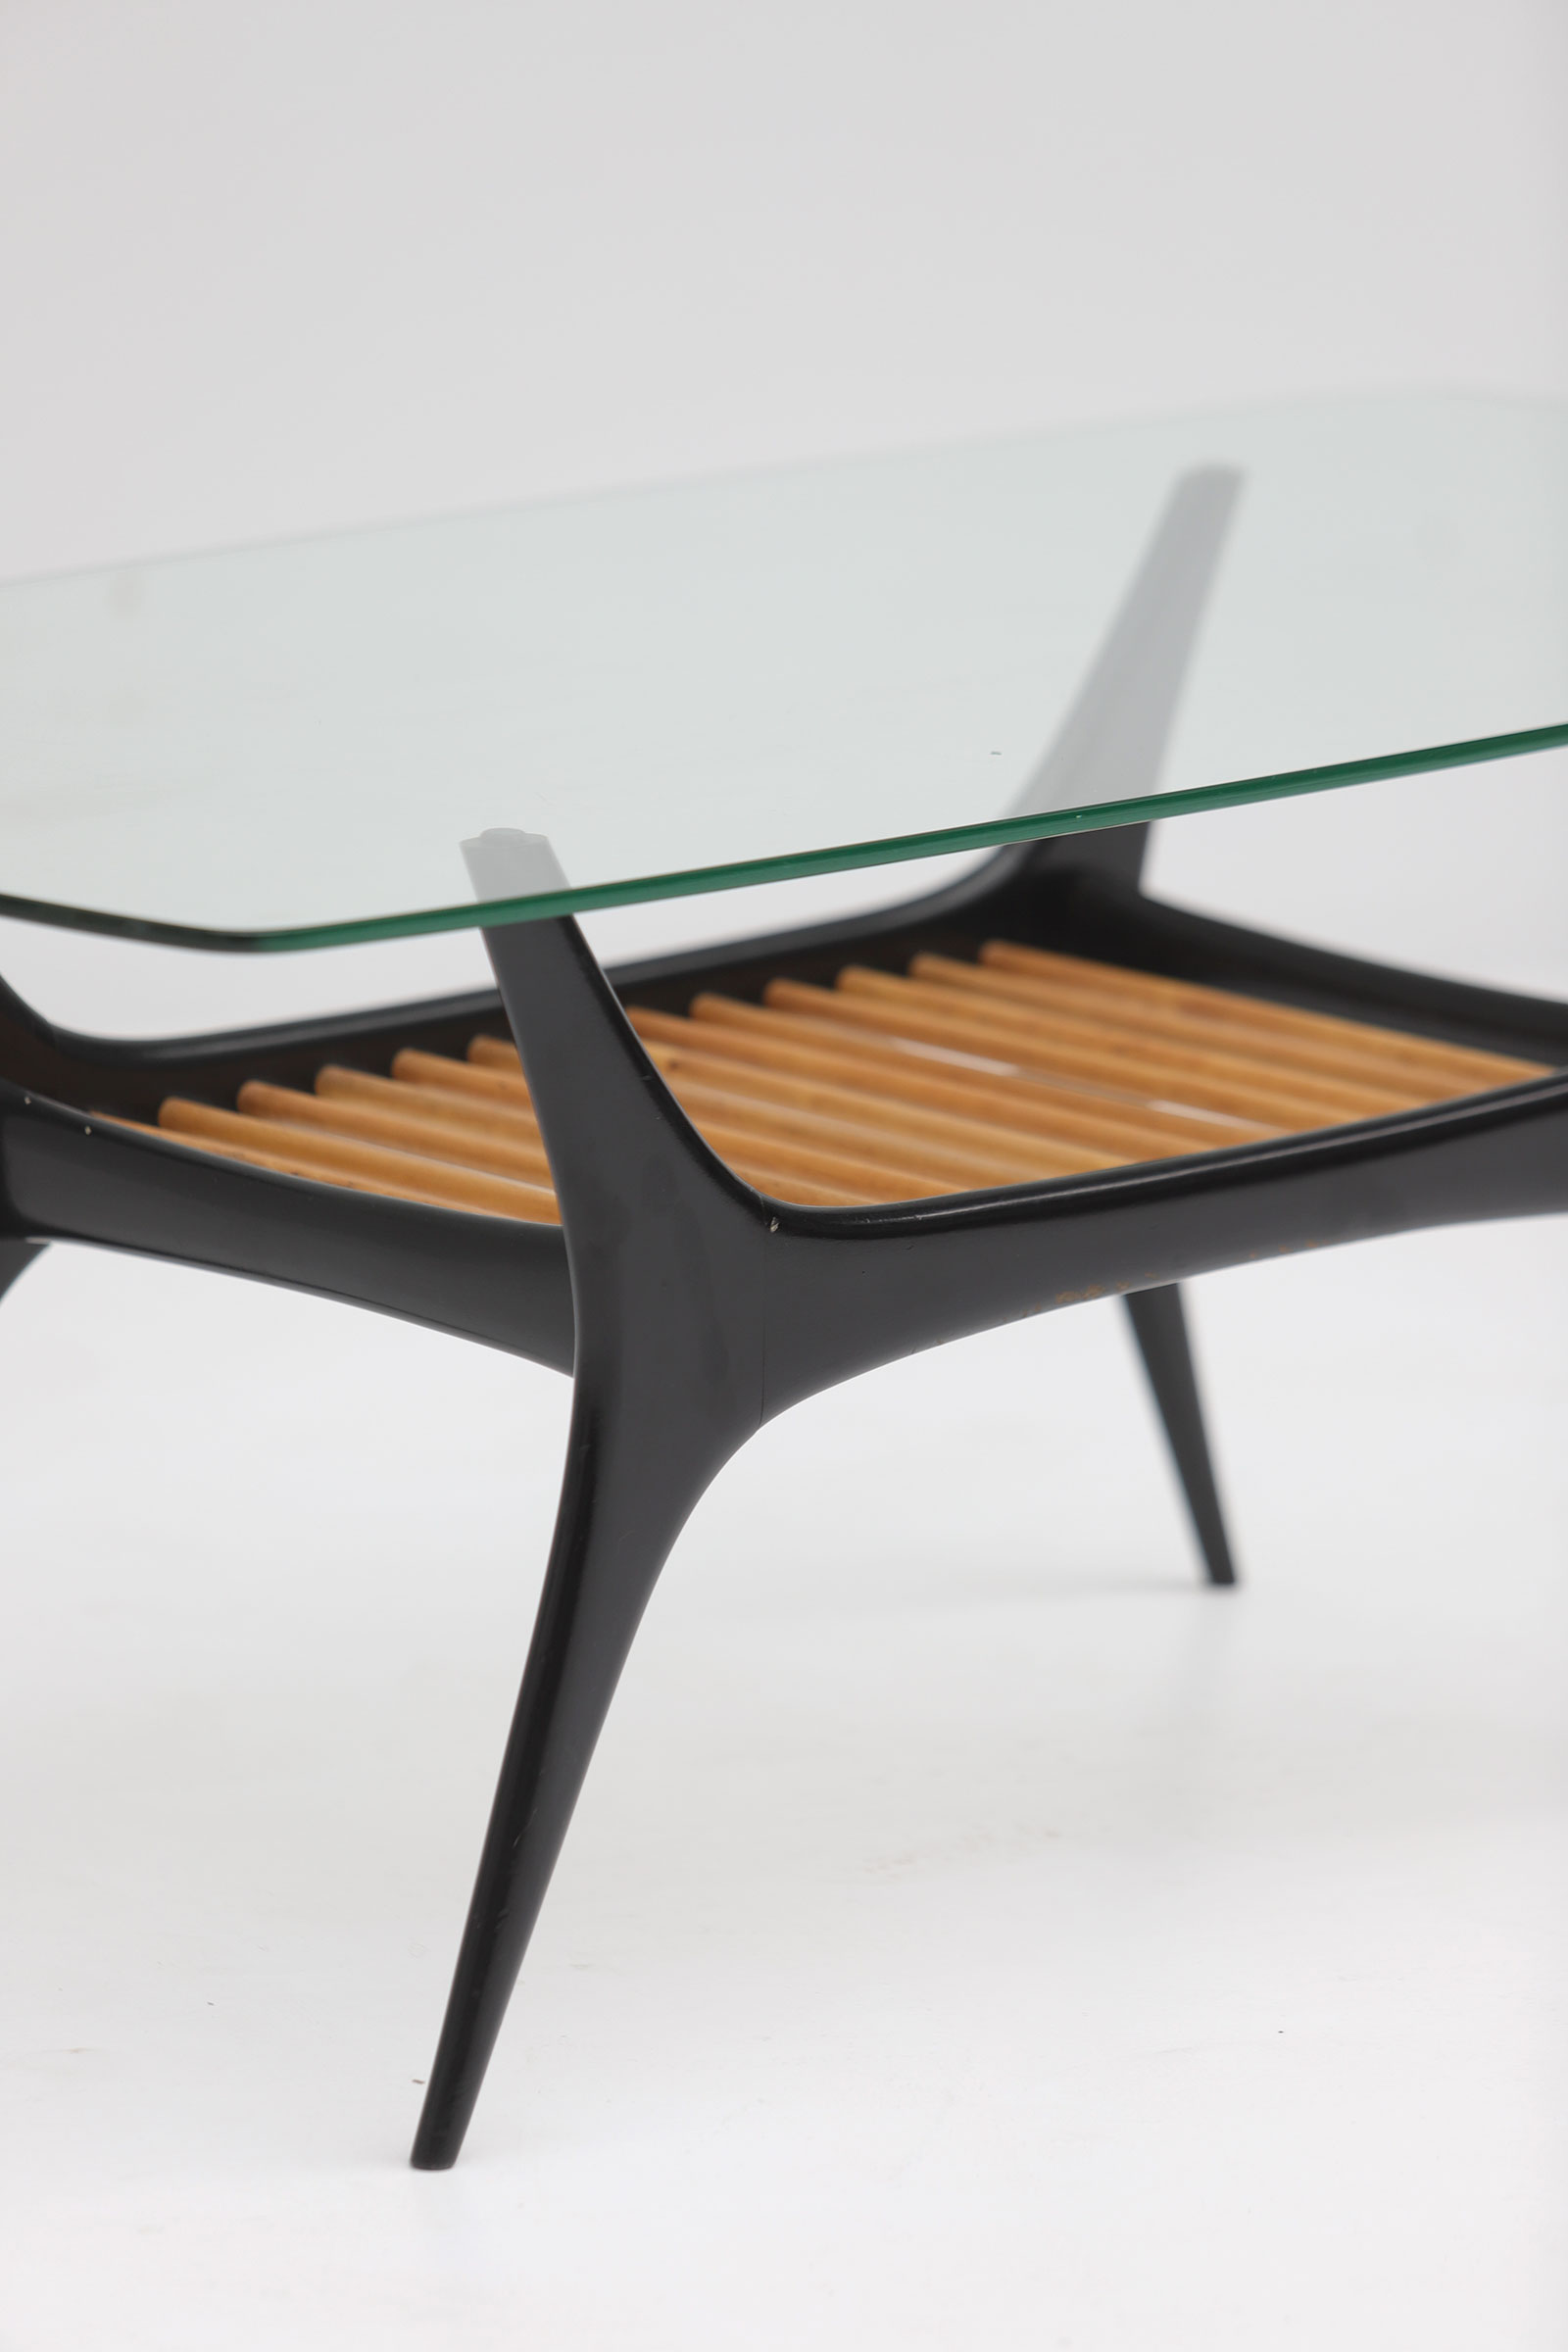 Alfred Hendrickx Coffee Table 1958image 14